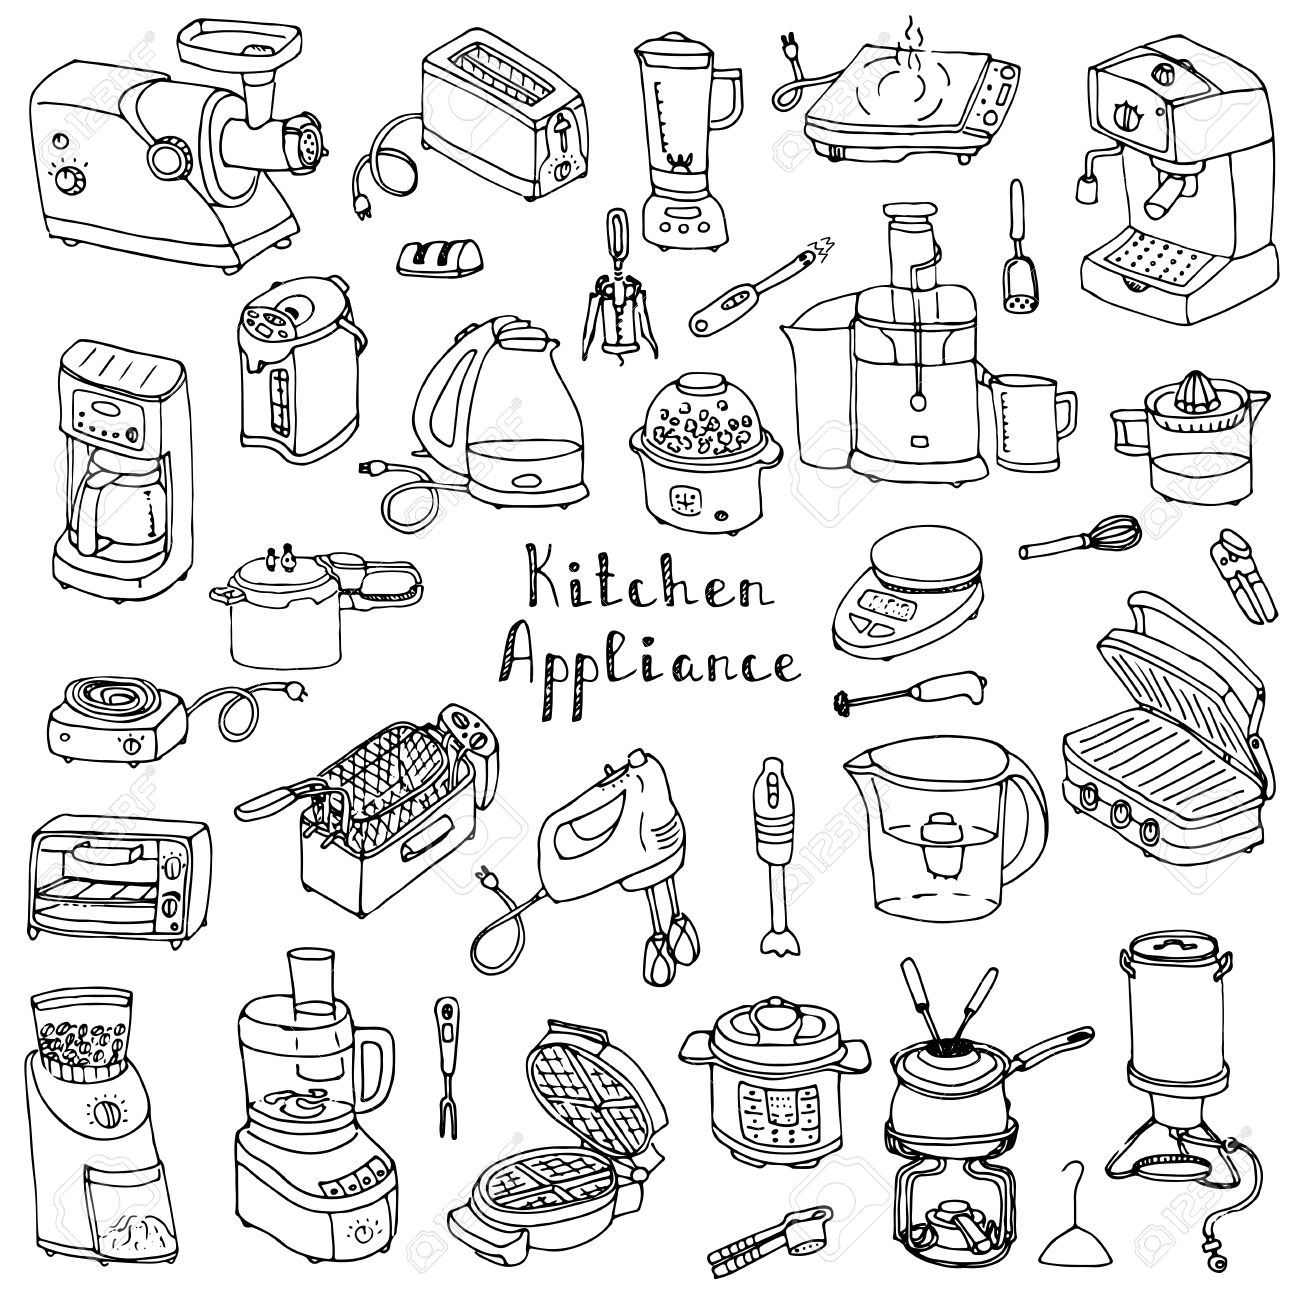 Hand drawn doodle kitchen appliance vector illustration cartoon icons set various household equipment and facilities small